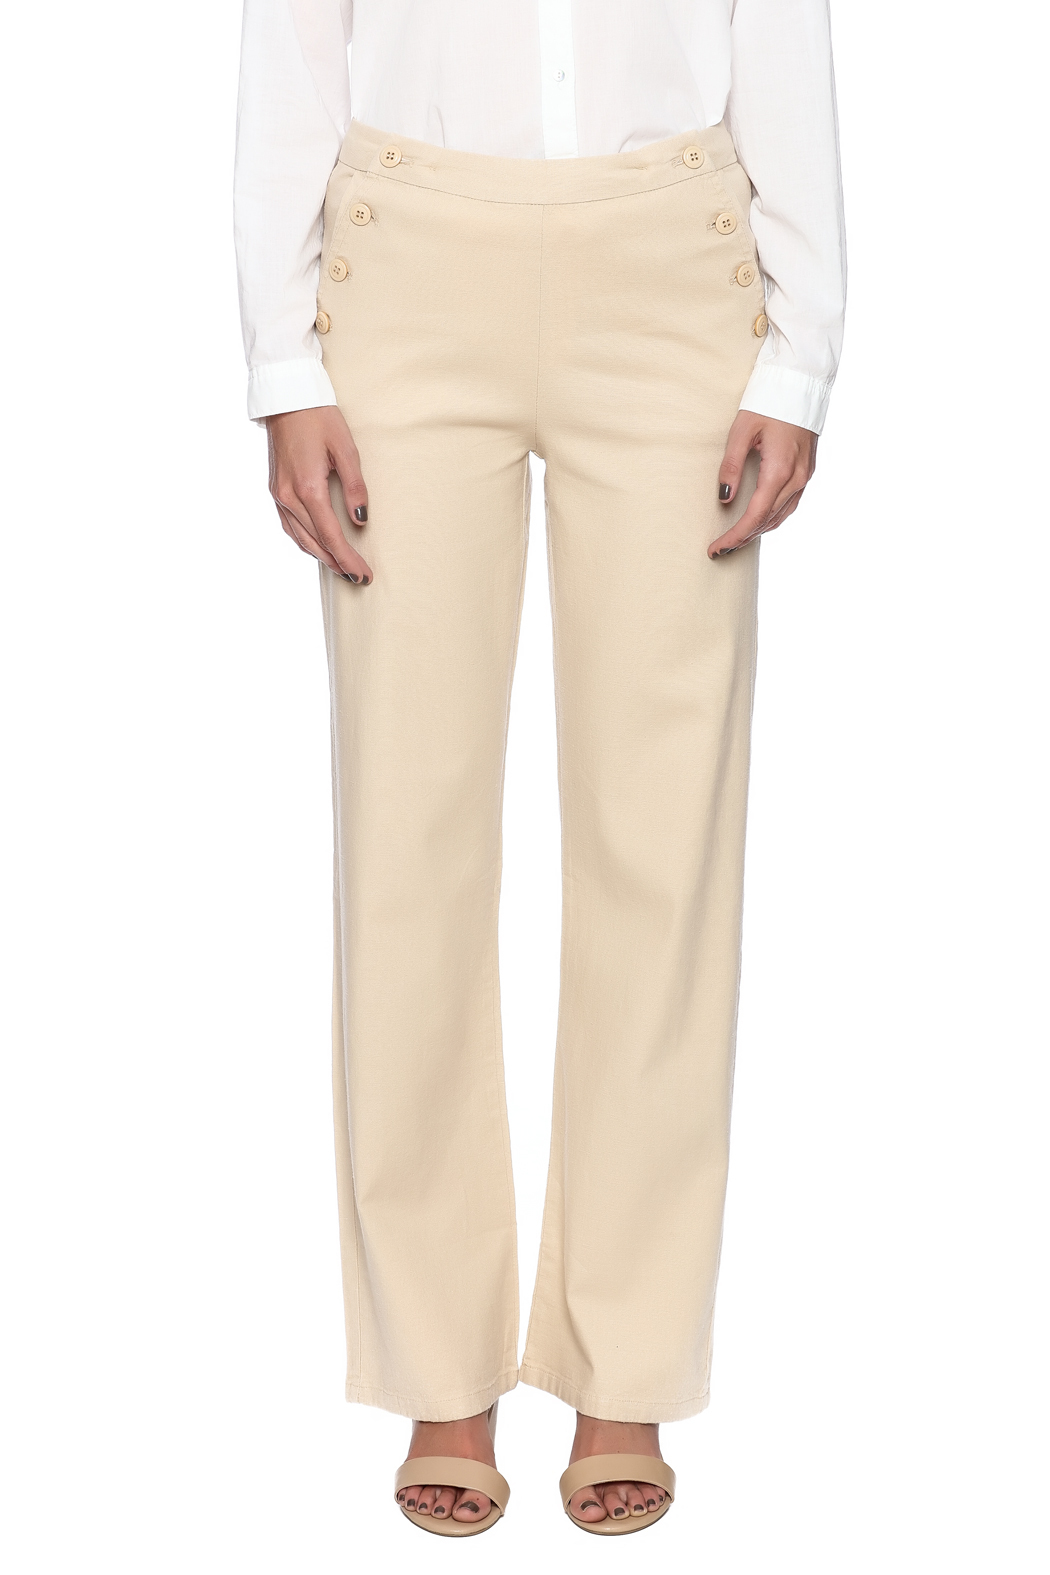 Bishop + Young Button Front Pants - Side Cropped Image